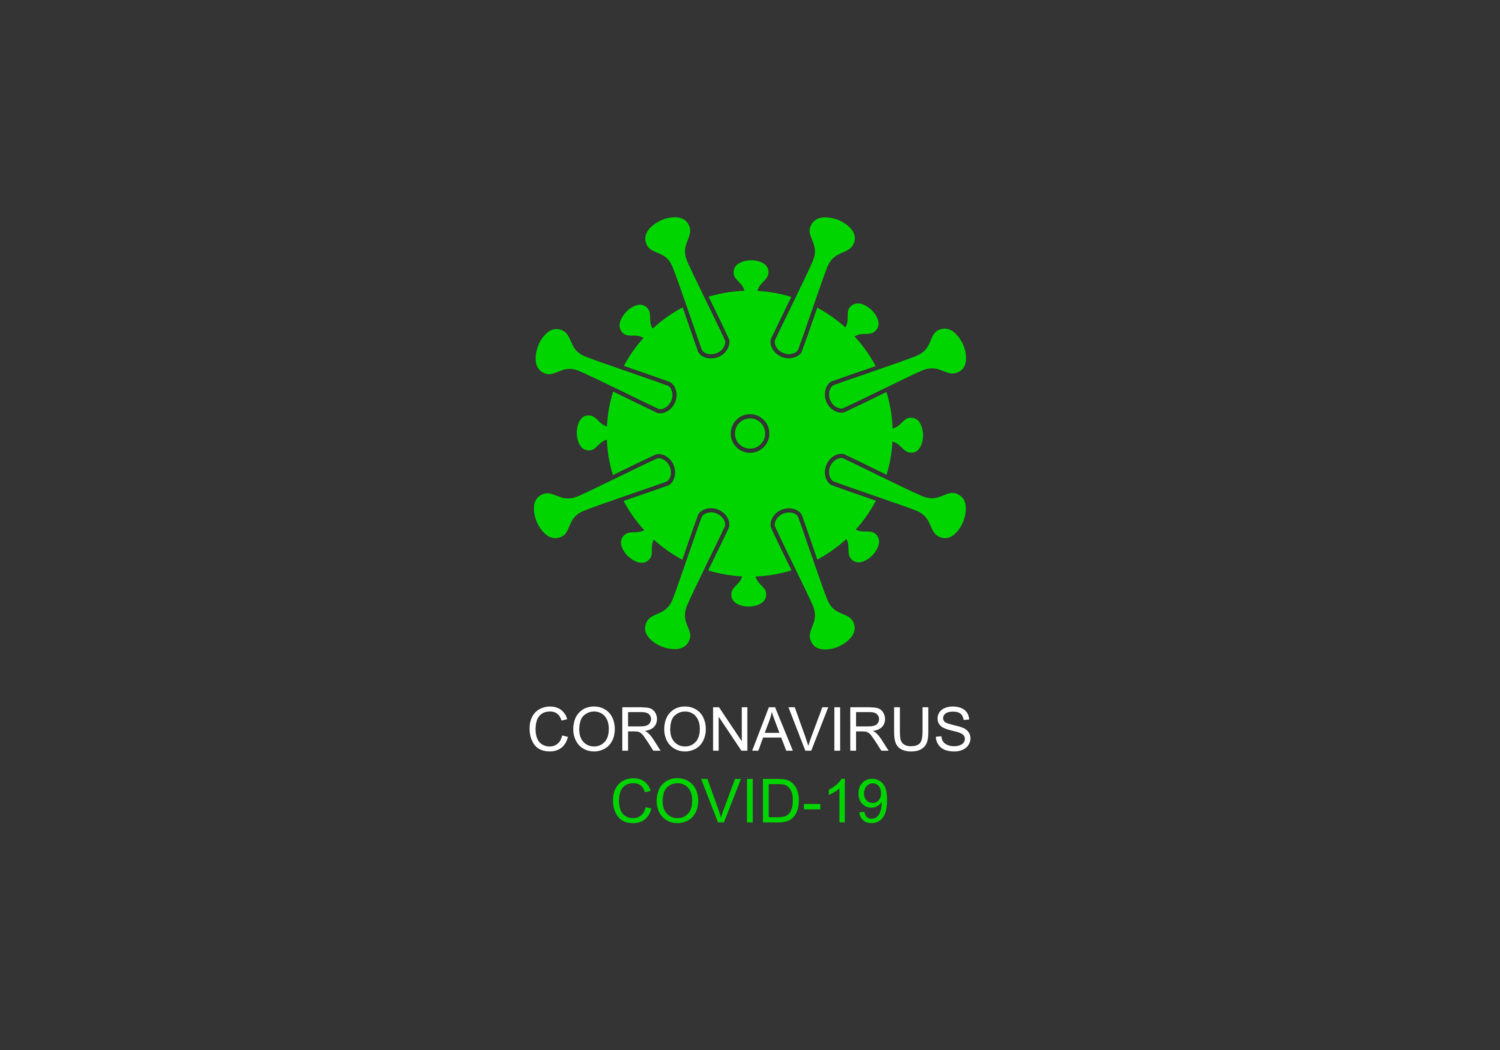 Free image download: Coronavirus, green, gray, labeled, covid-19, #000053